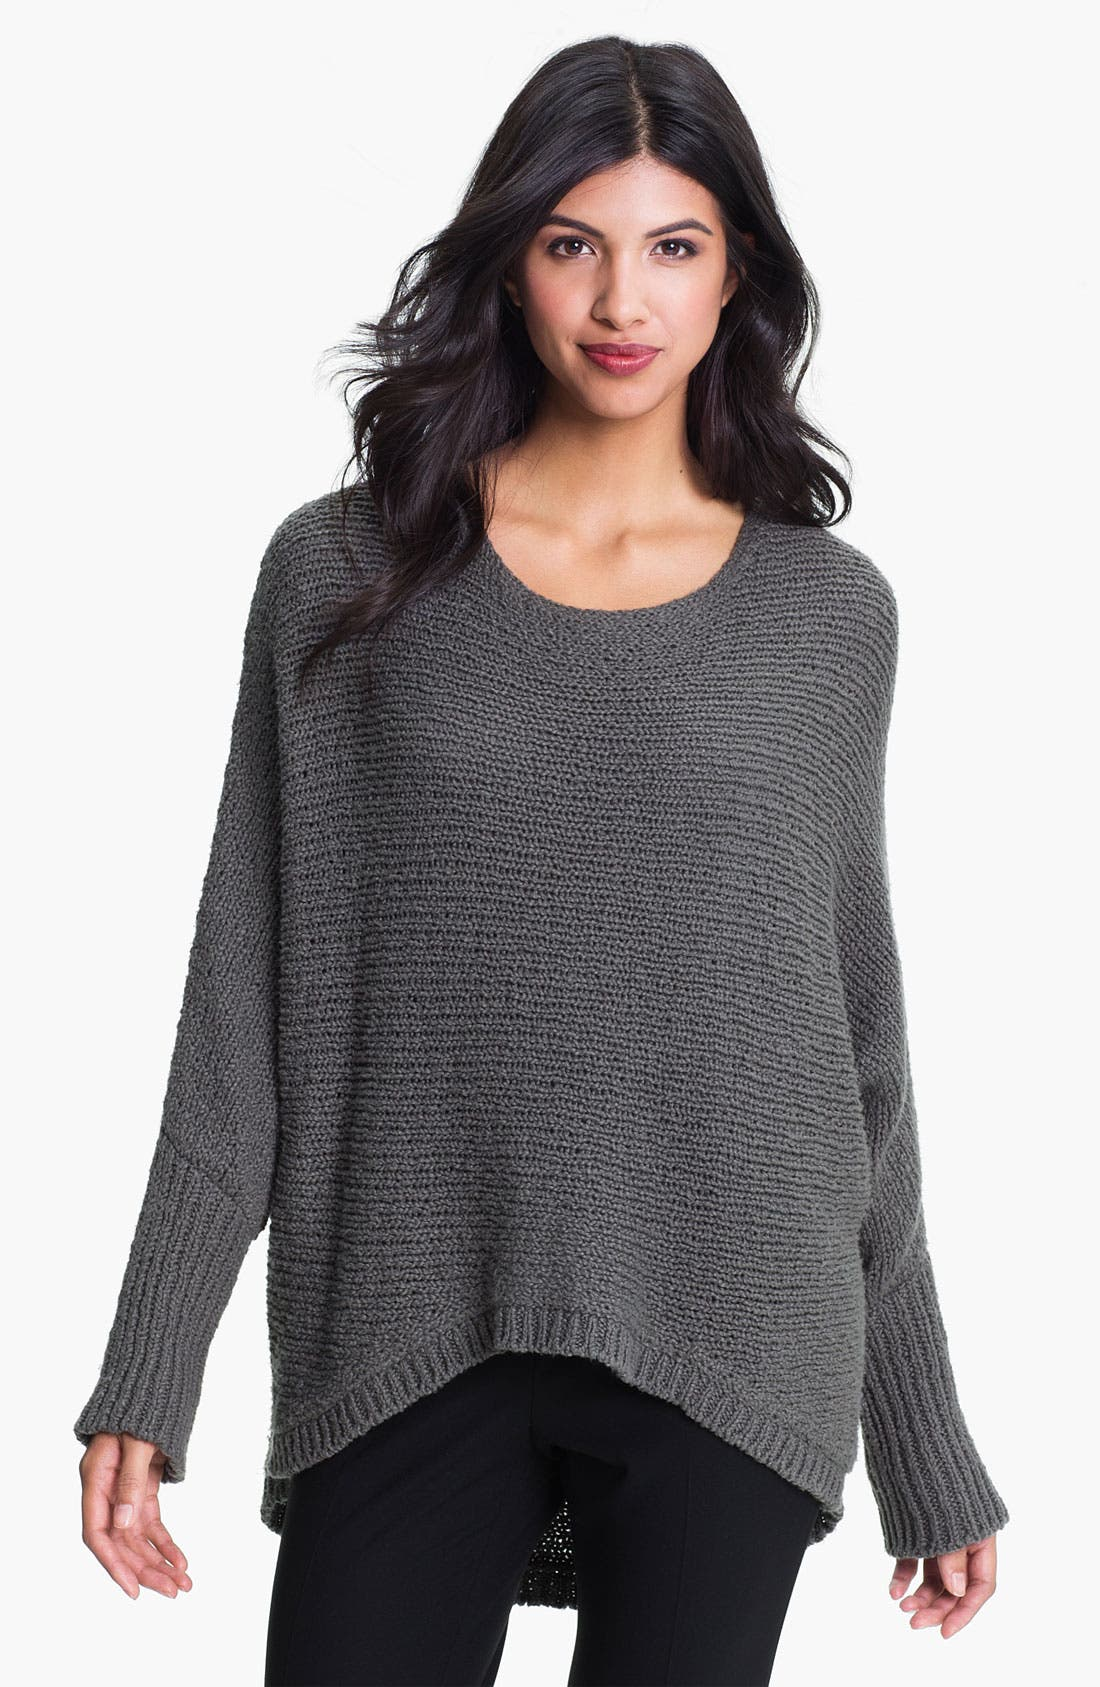 Alternate Image 1 Selected - Eileen Fisher Bateau Neck Boxy Sweater (Online Exclusive)